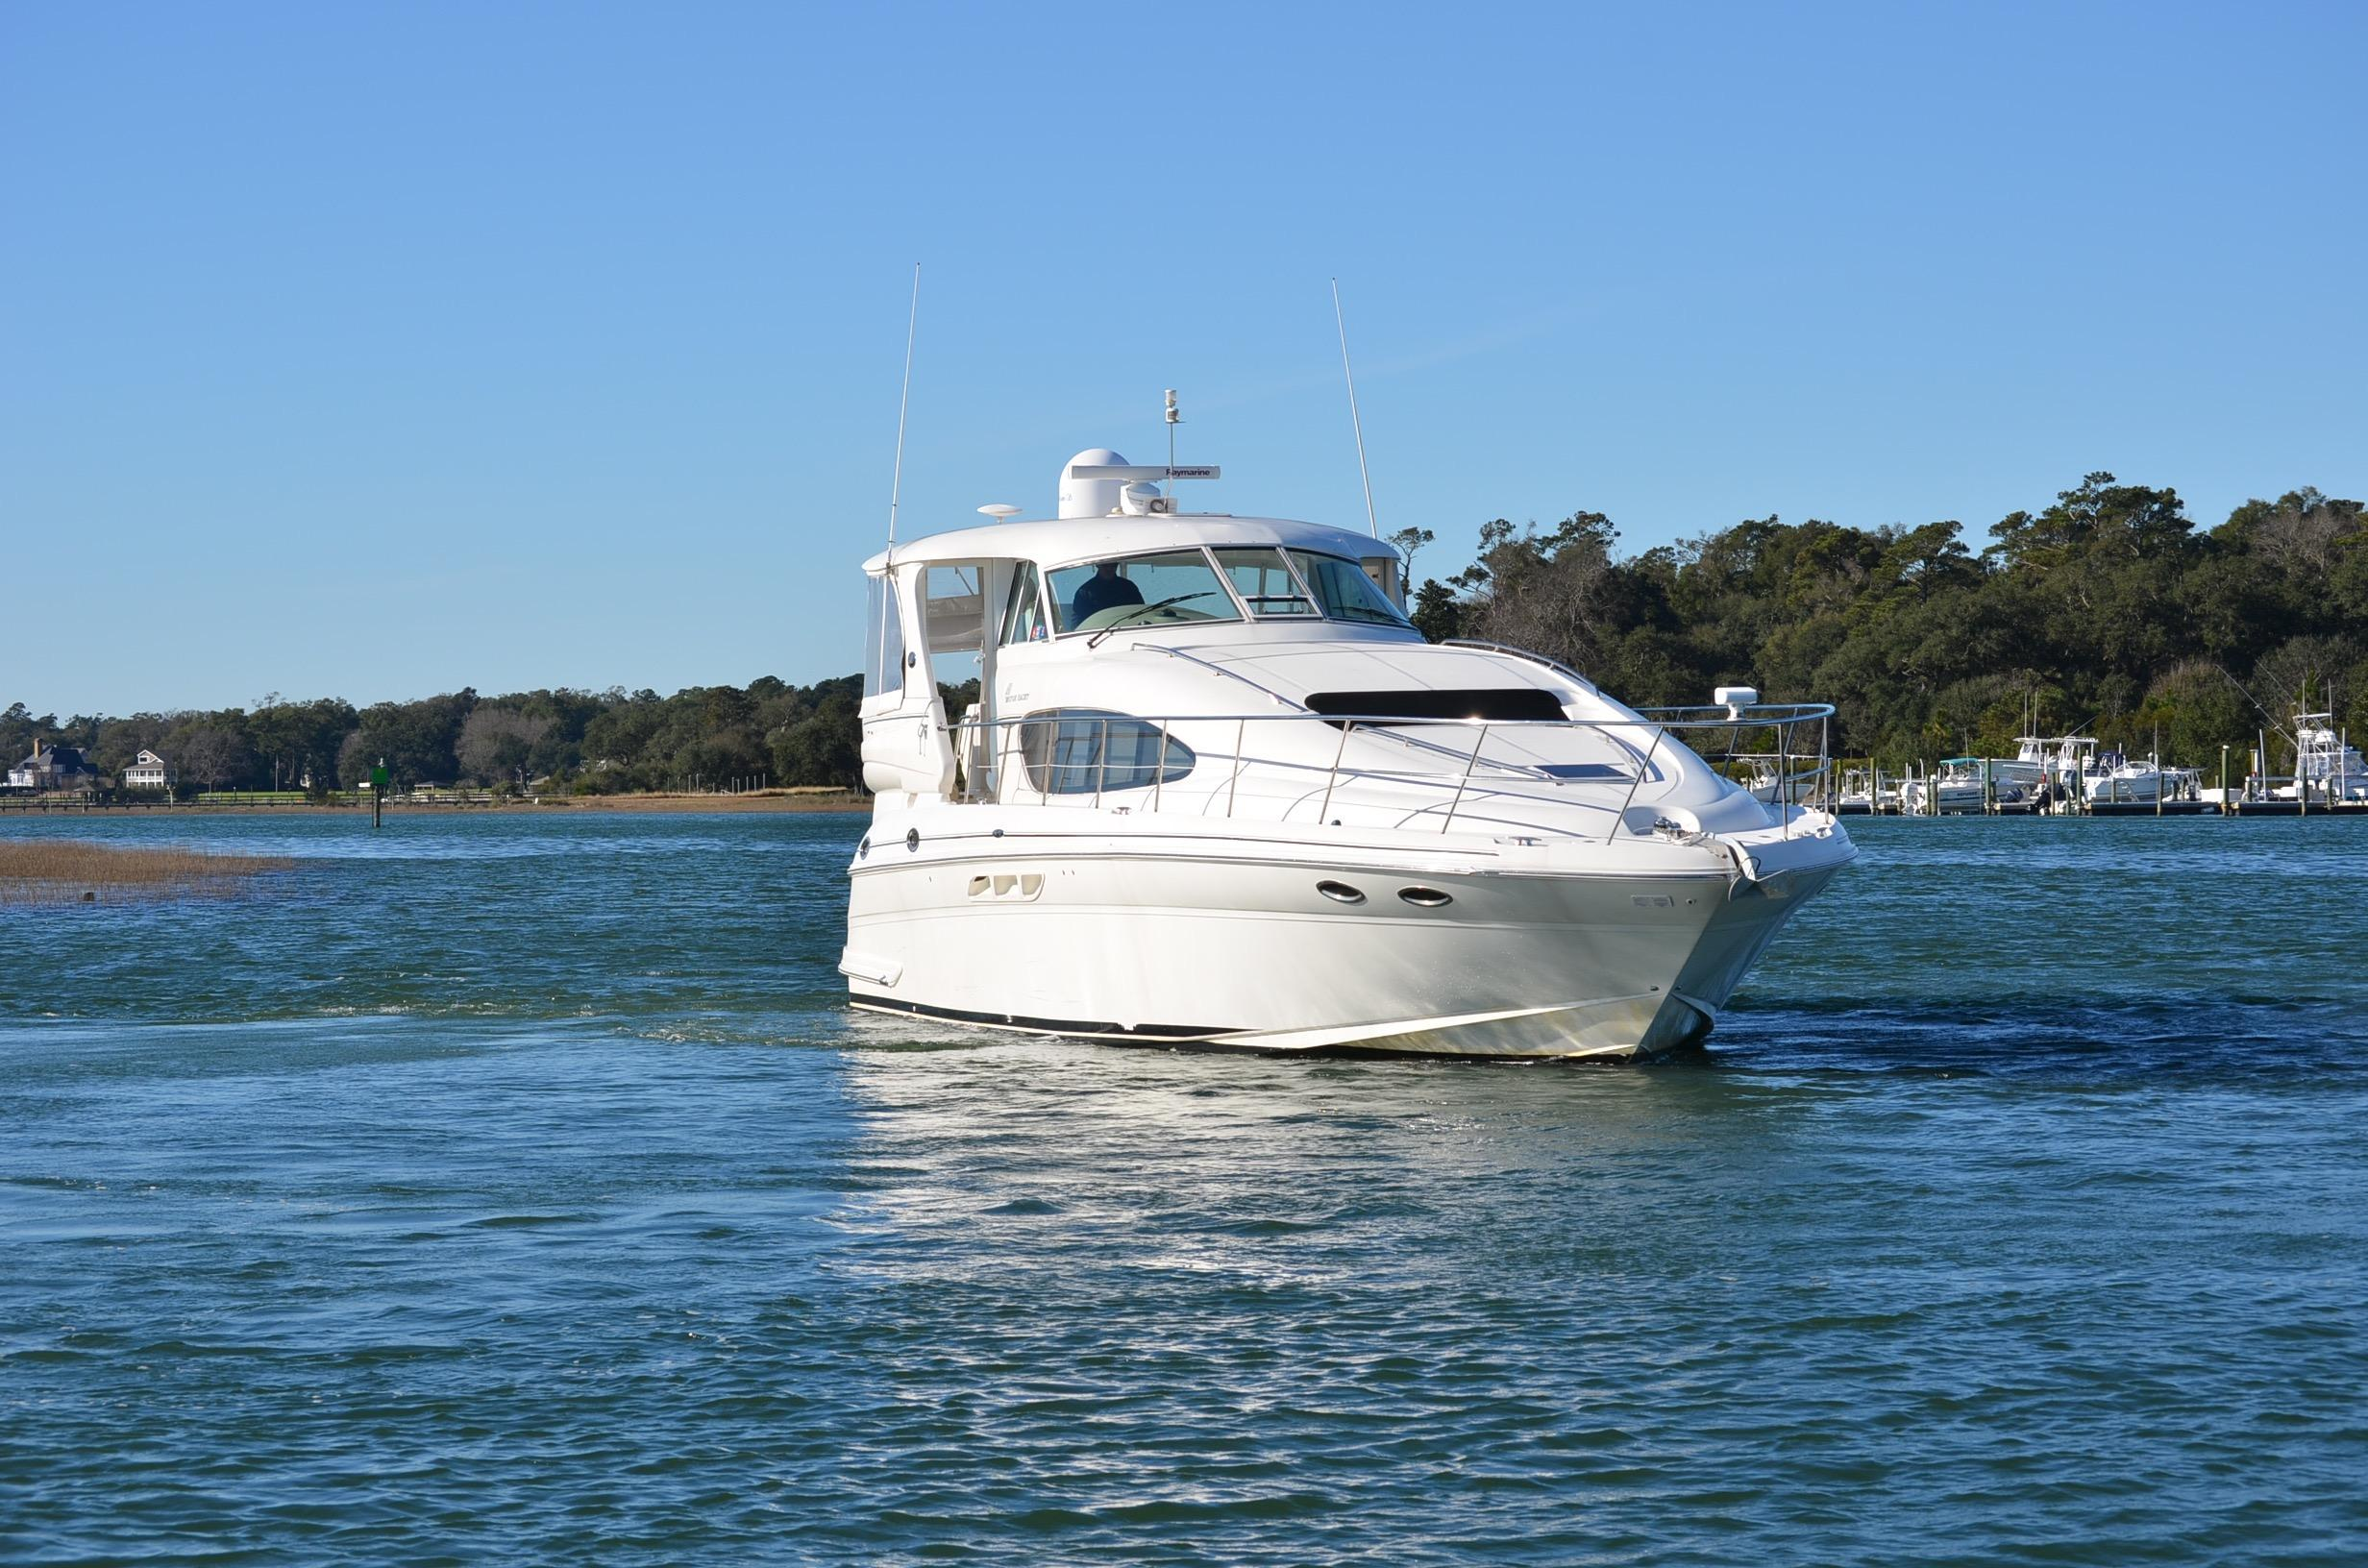 48 sea ray 2004 pretty lady for sale in wrightsville beach for Ocean yachts 48 motor yacht for sale